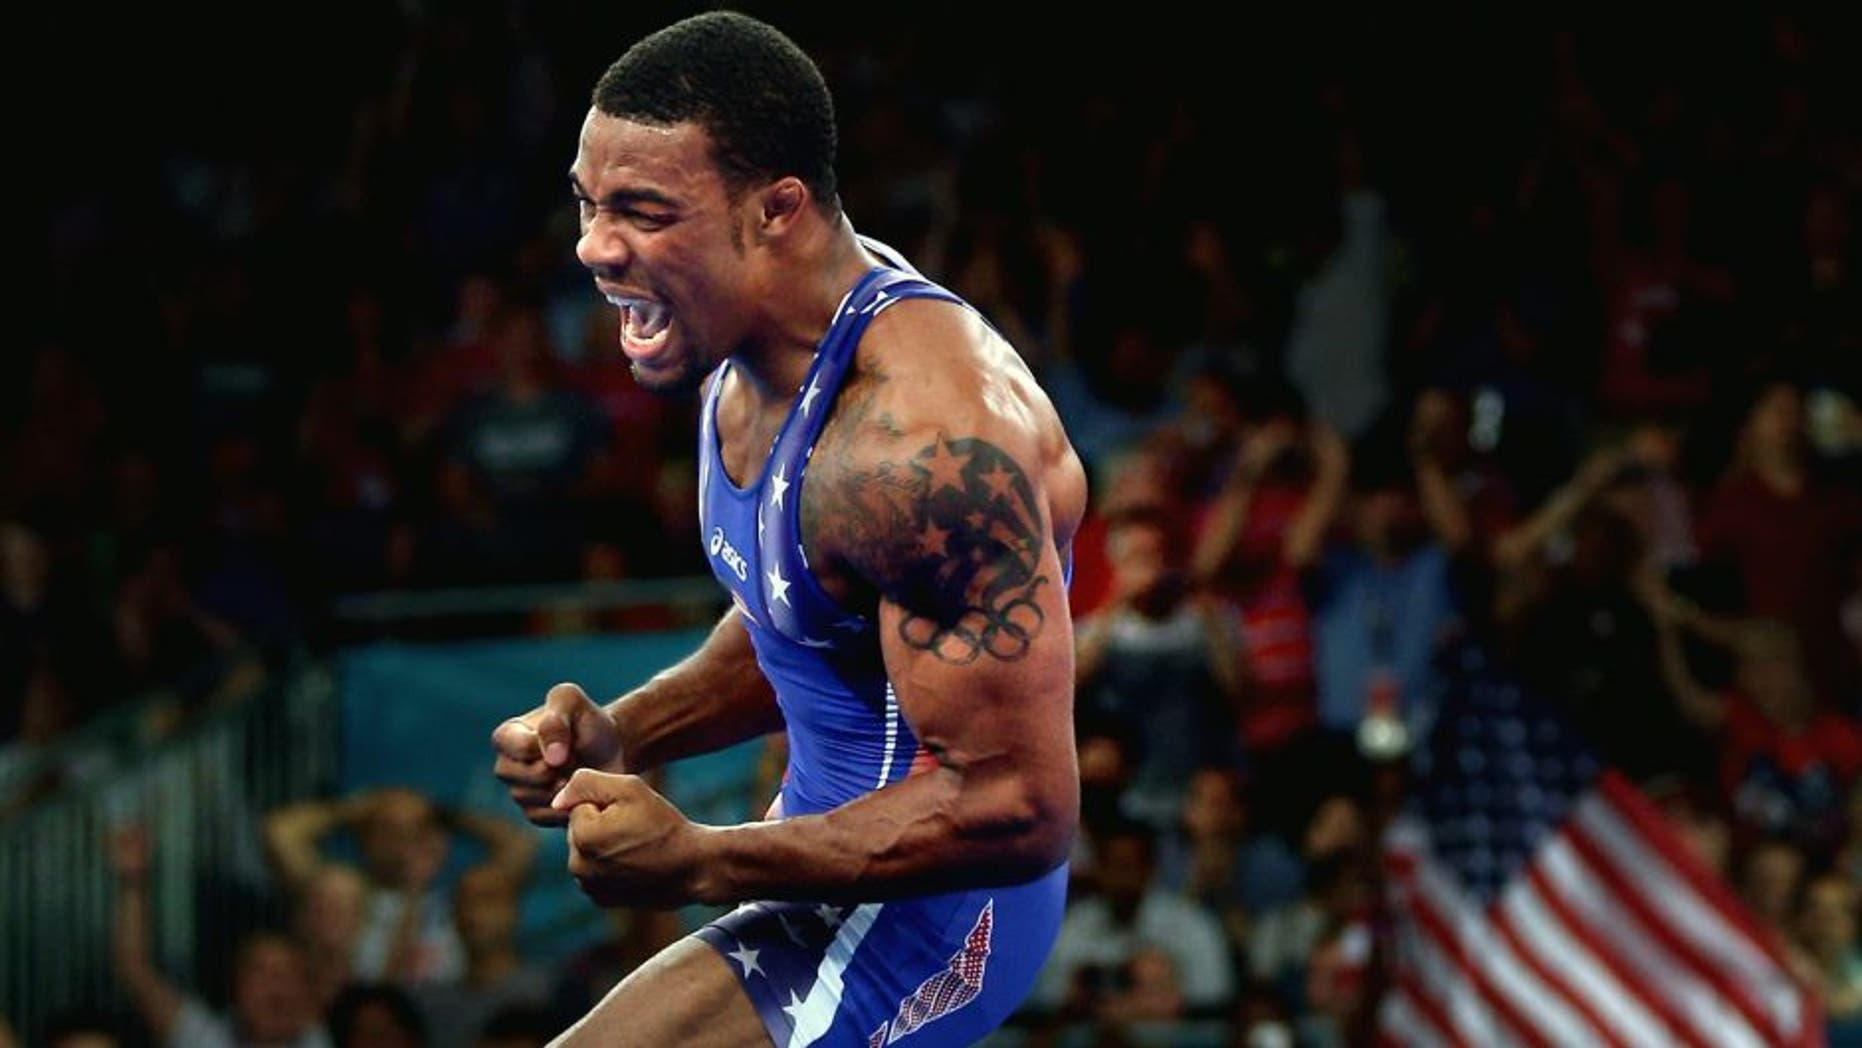 LONDON, ENGLAND - AUGUST 10: Jordan Ernest Burroughs of the United States celebrates his gold medal in the Men's Freestyle 74 kg Wrestling on Day 14 of the London 2012 Olympic Games at ExCeL on August 10, 2012 in London, England. (Photo by Feng Li/Getty Images)